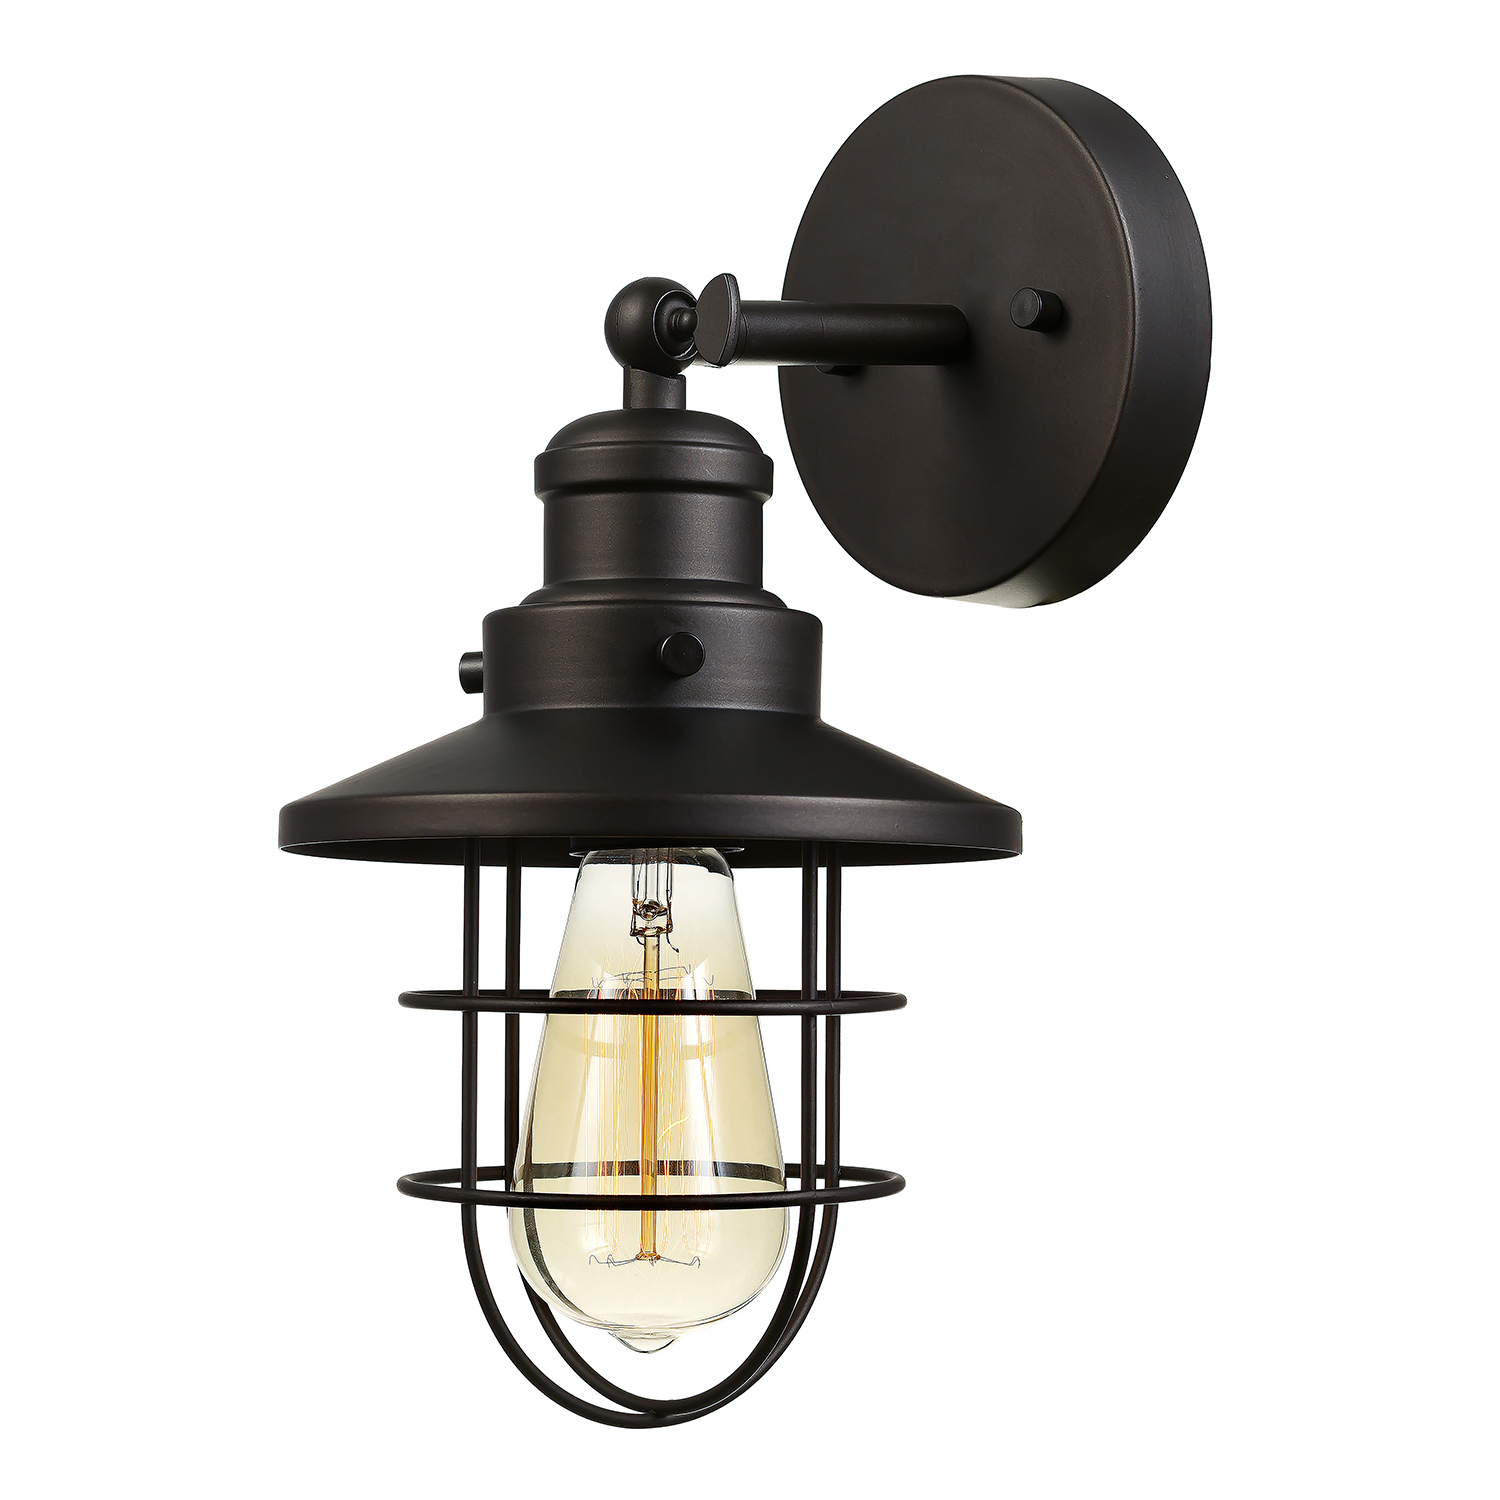 Globe Electric 60 Watt Beaufort 1 Light Oil Rubbed Bronze Wall Sconce